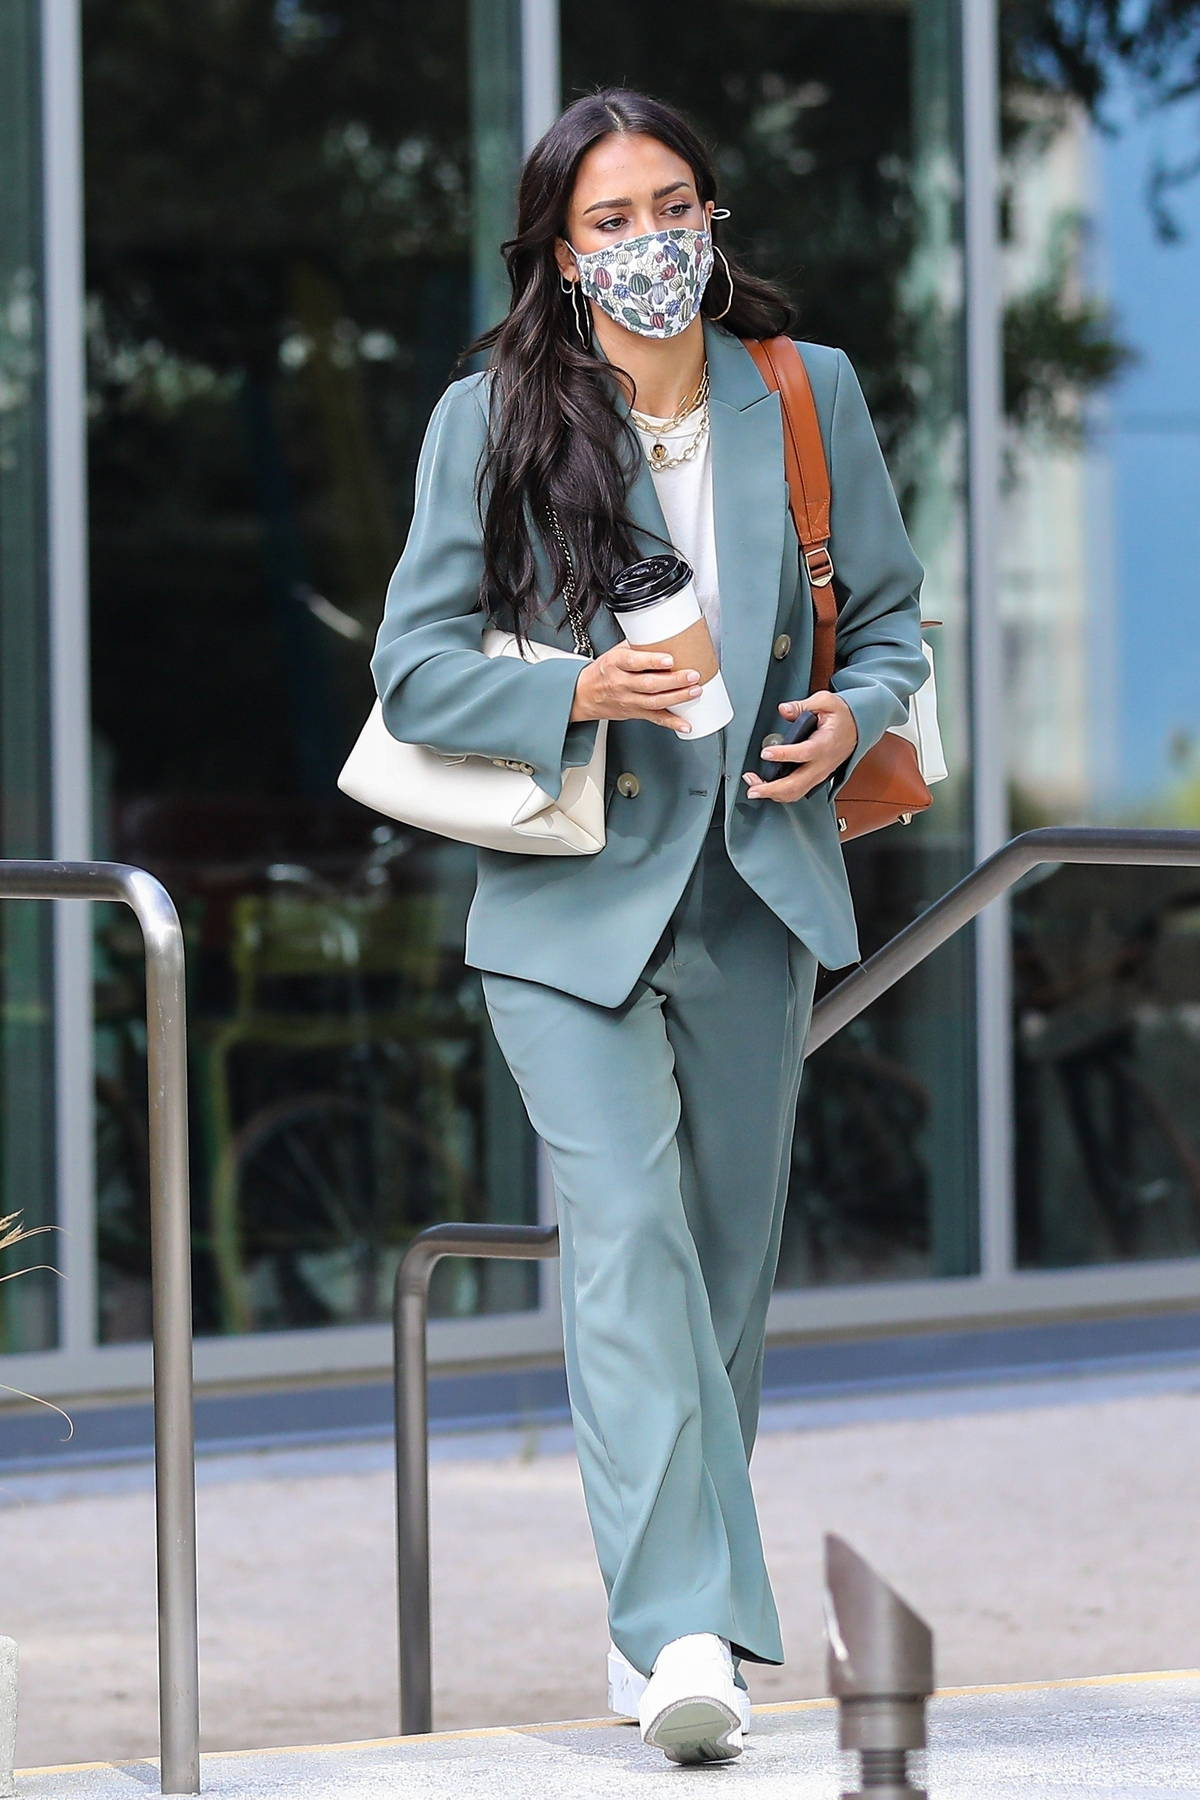 Jessica Alba dons a sage green pantsuit as she arrives at the Honest Headquarters in Playa Vista, California